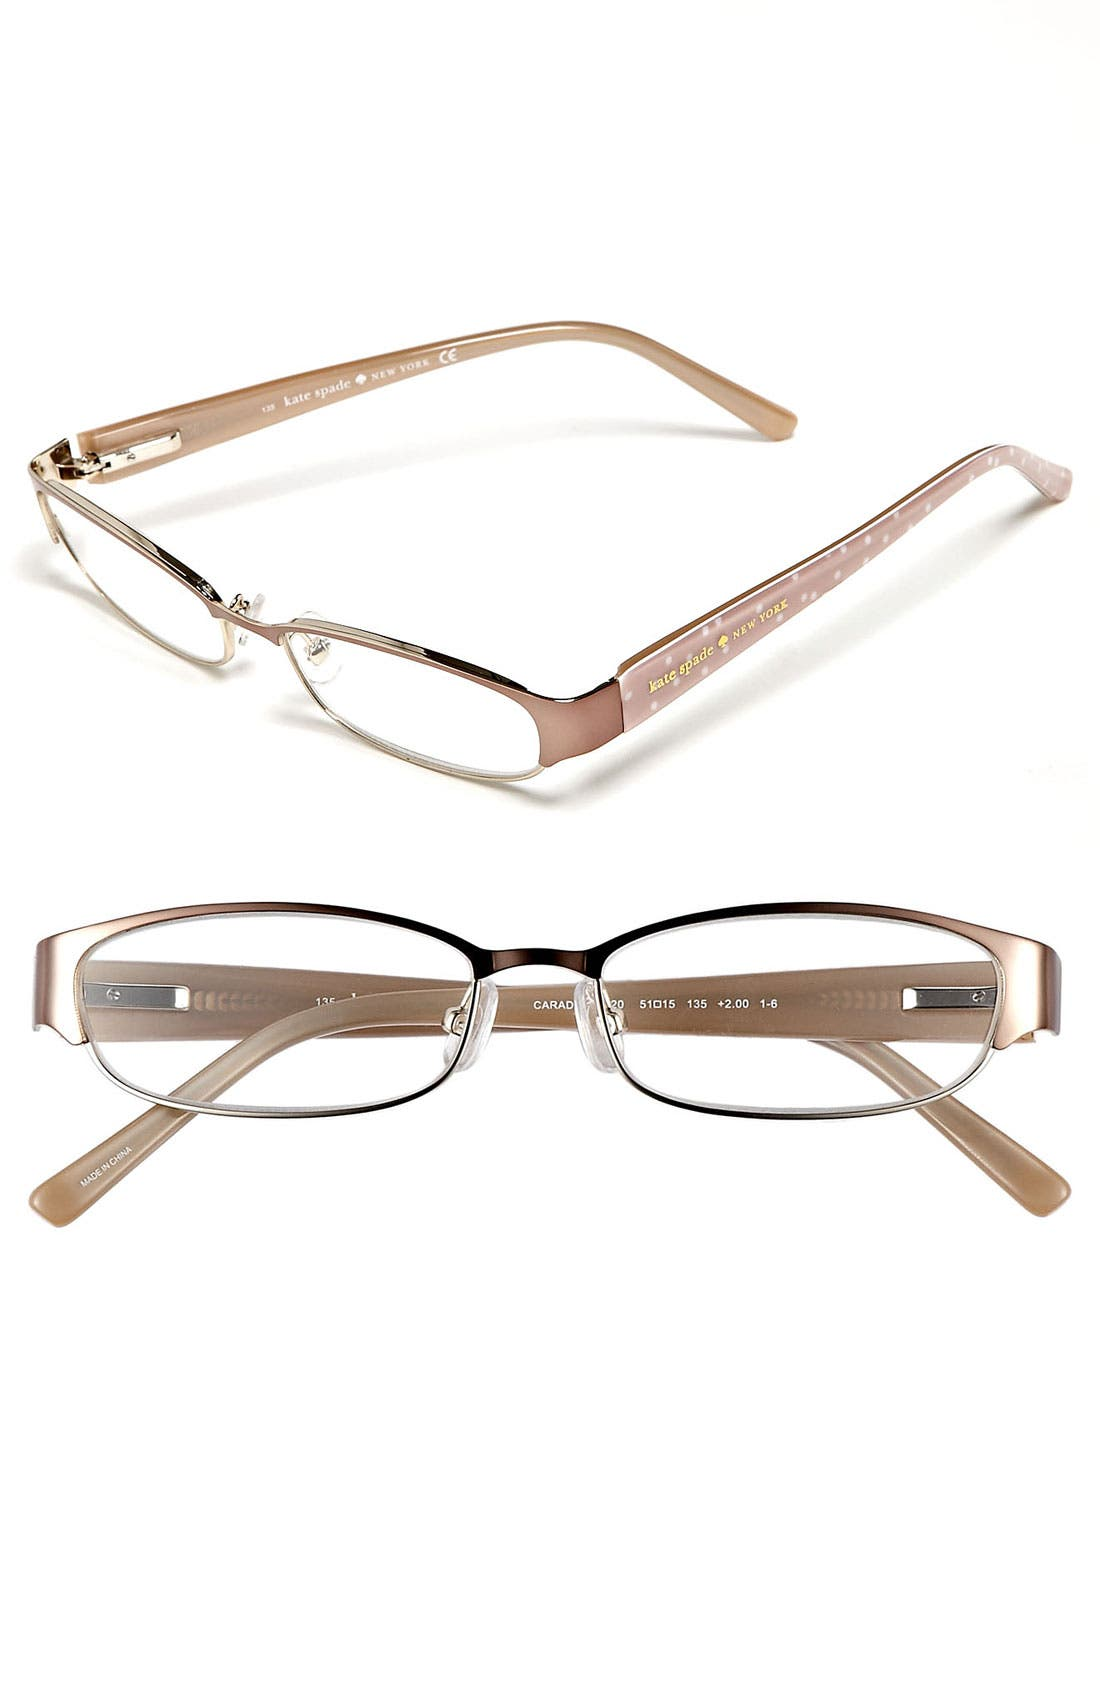 Alternate Image 1 Selected - kate spade new york 'caradee' reading glasses